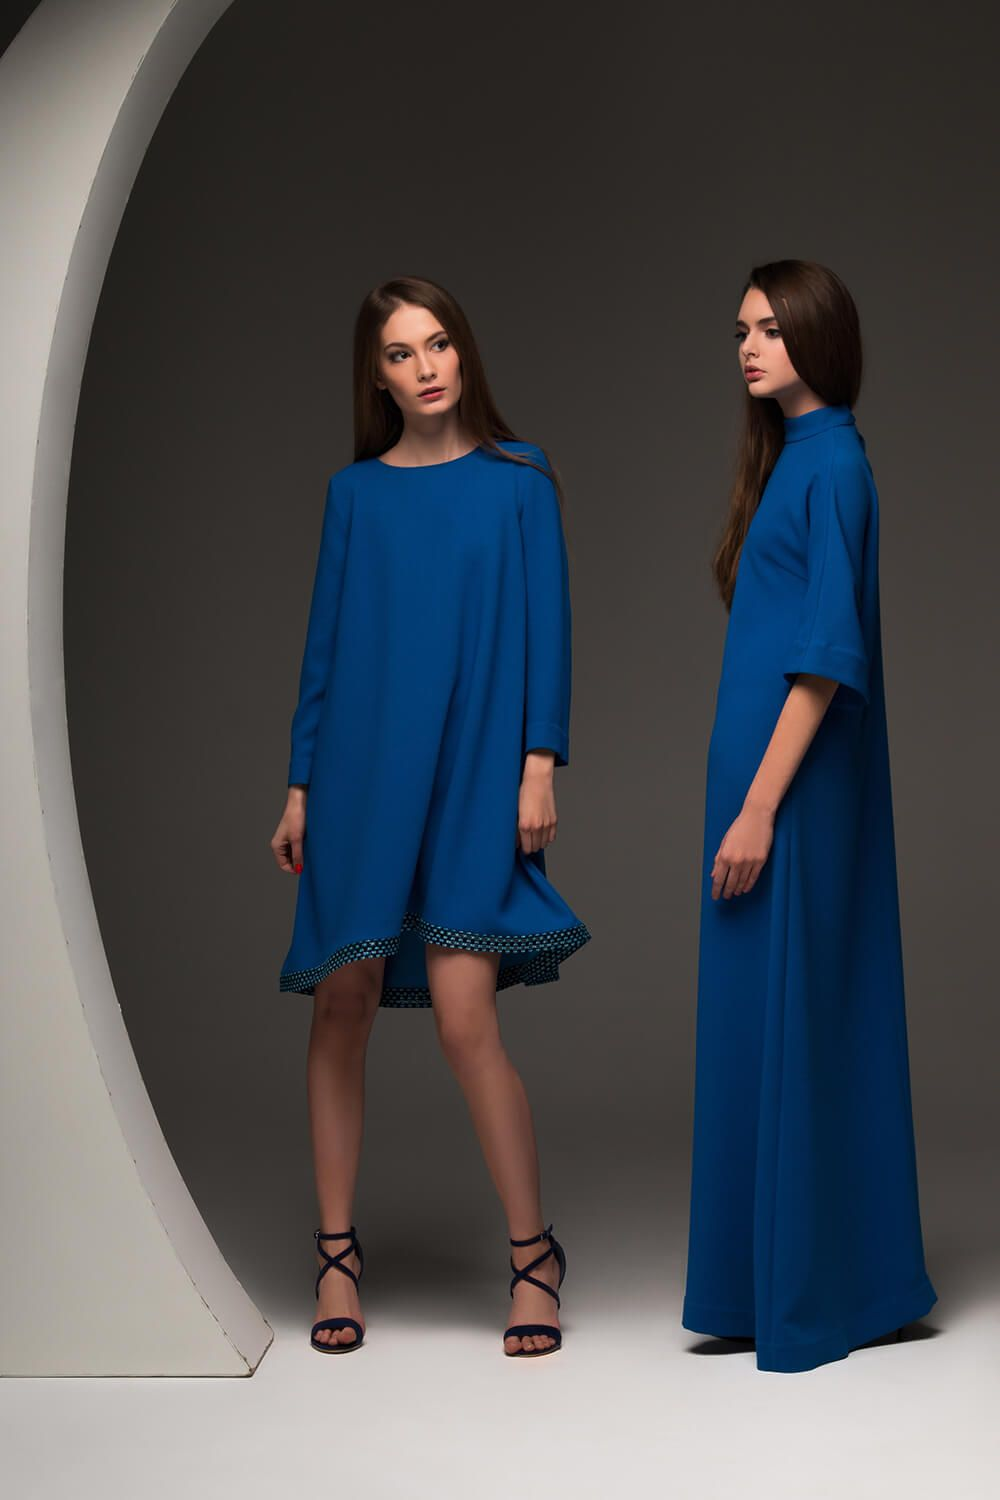 Stylish Mini Flare Dress In Bondi Blue Color Long Evening Amazing Deep Straight Silhouette Flared 3 4 Sleeve Little Cutout On The Back